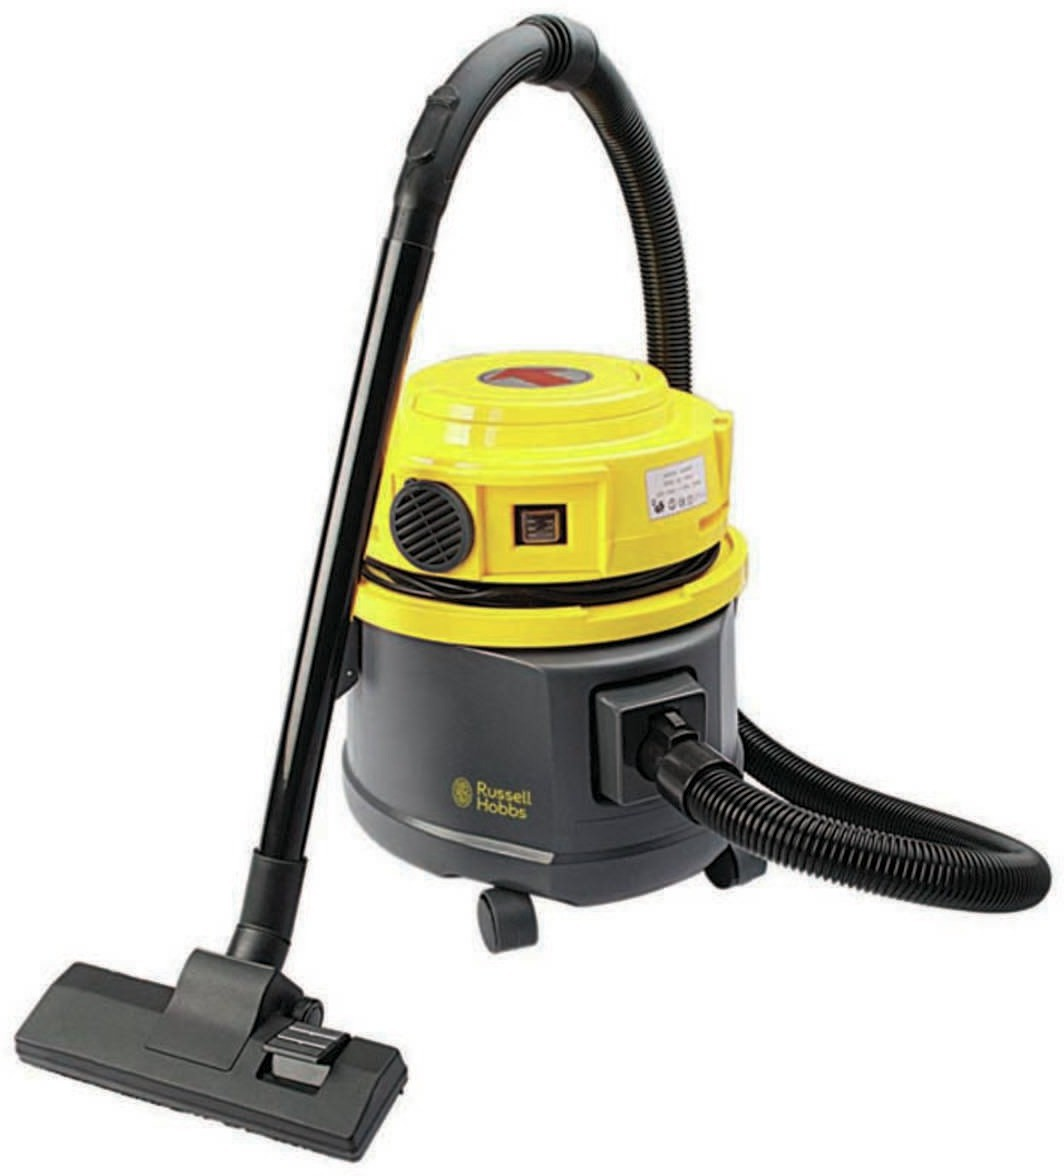 Russell Hobbs Ravc1400wd Wet Dry Cleaneryellow Price In India 15 Black Decker And Vacuum Cleaner